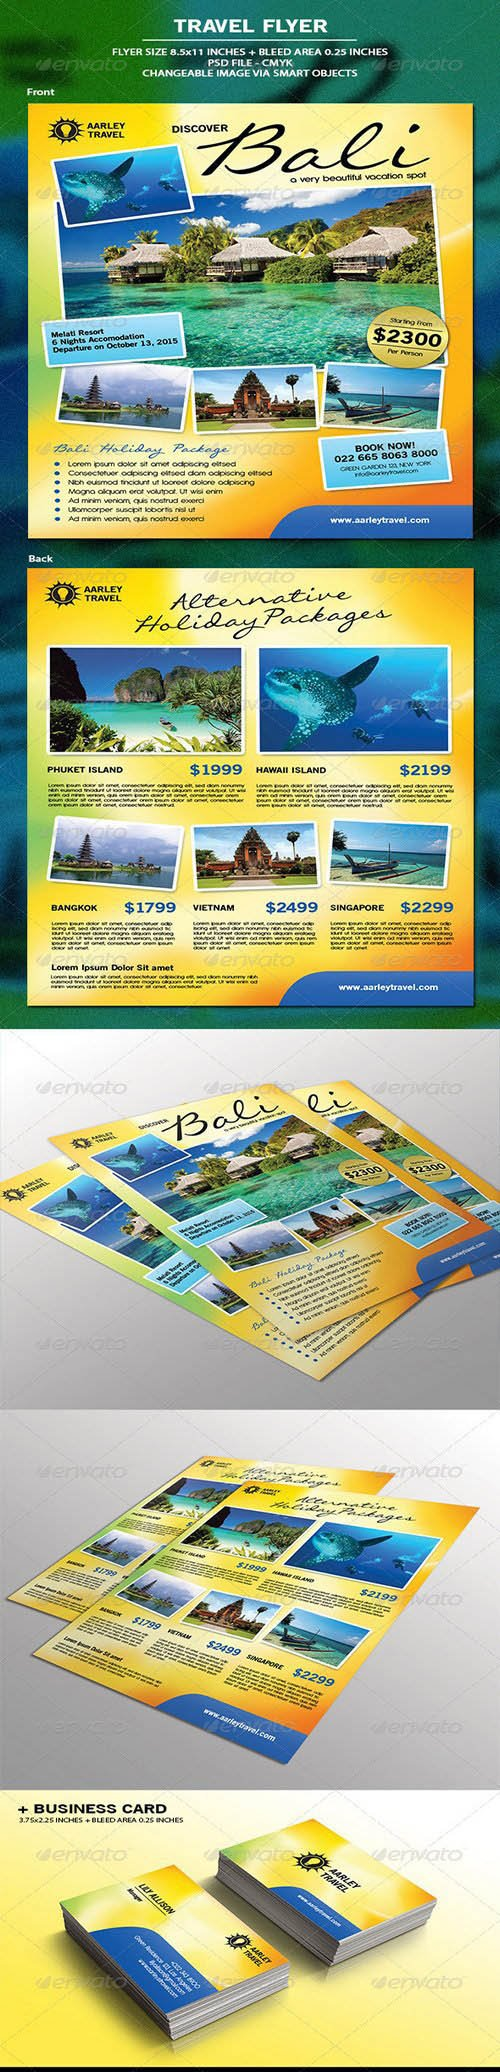 Graphicriver - Travel Flyer + Business Card 6867642